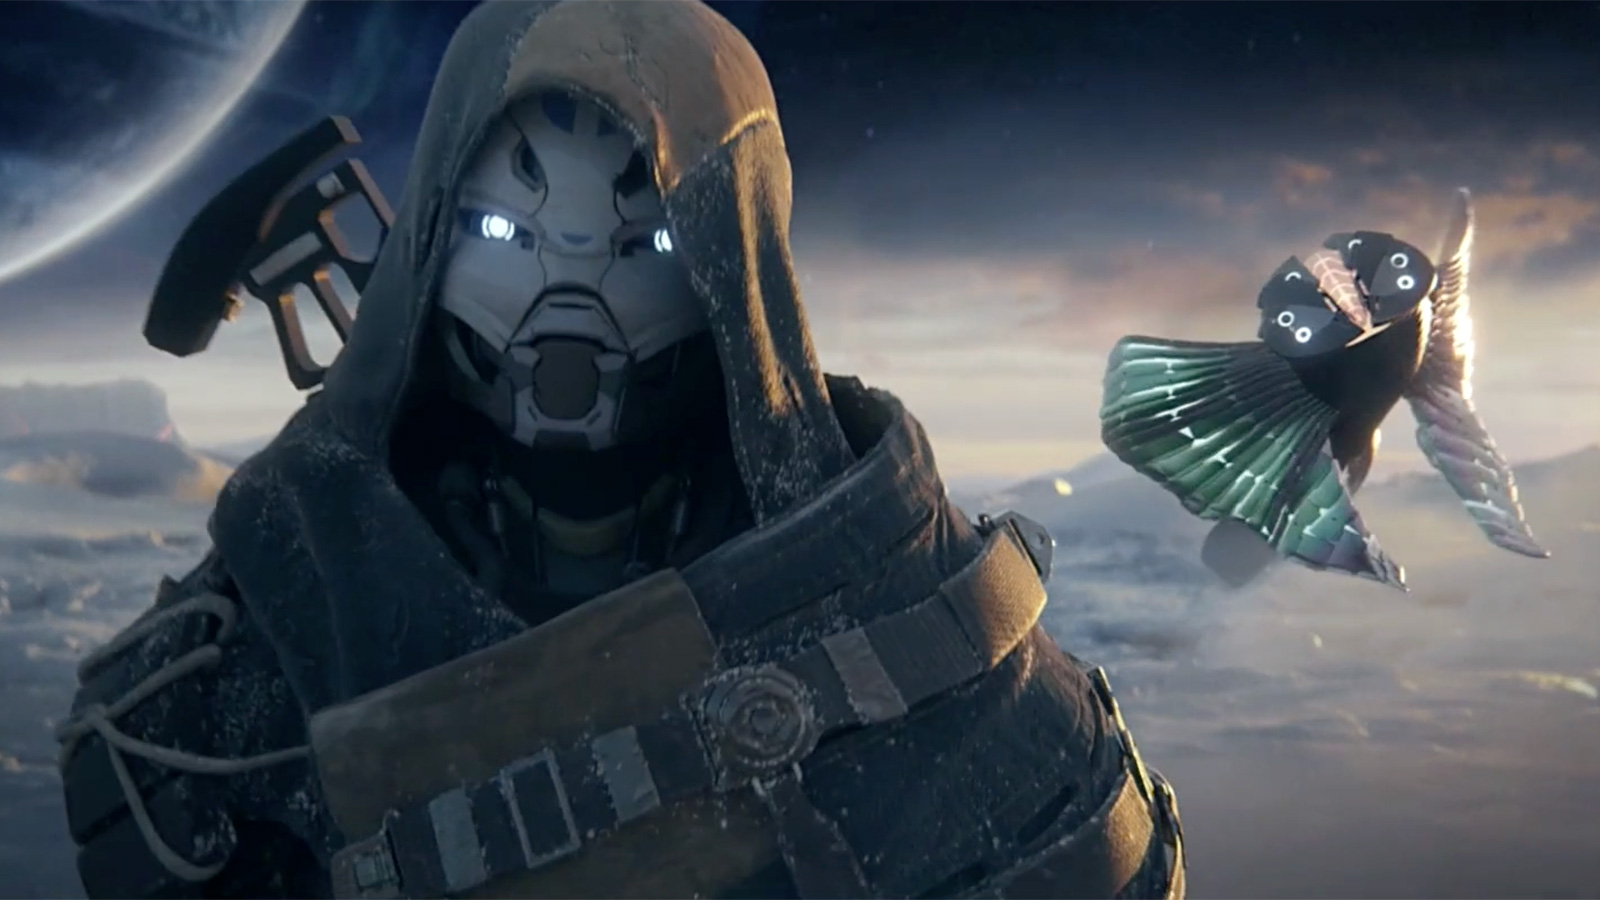 Destiny 2: Xur Today November 27th - Location and Inventory